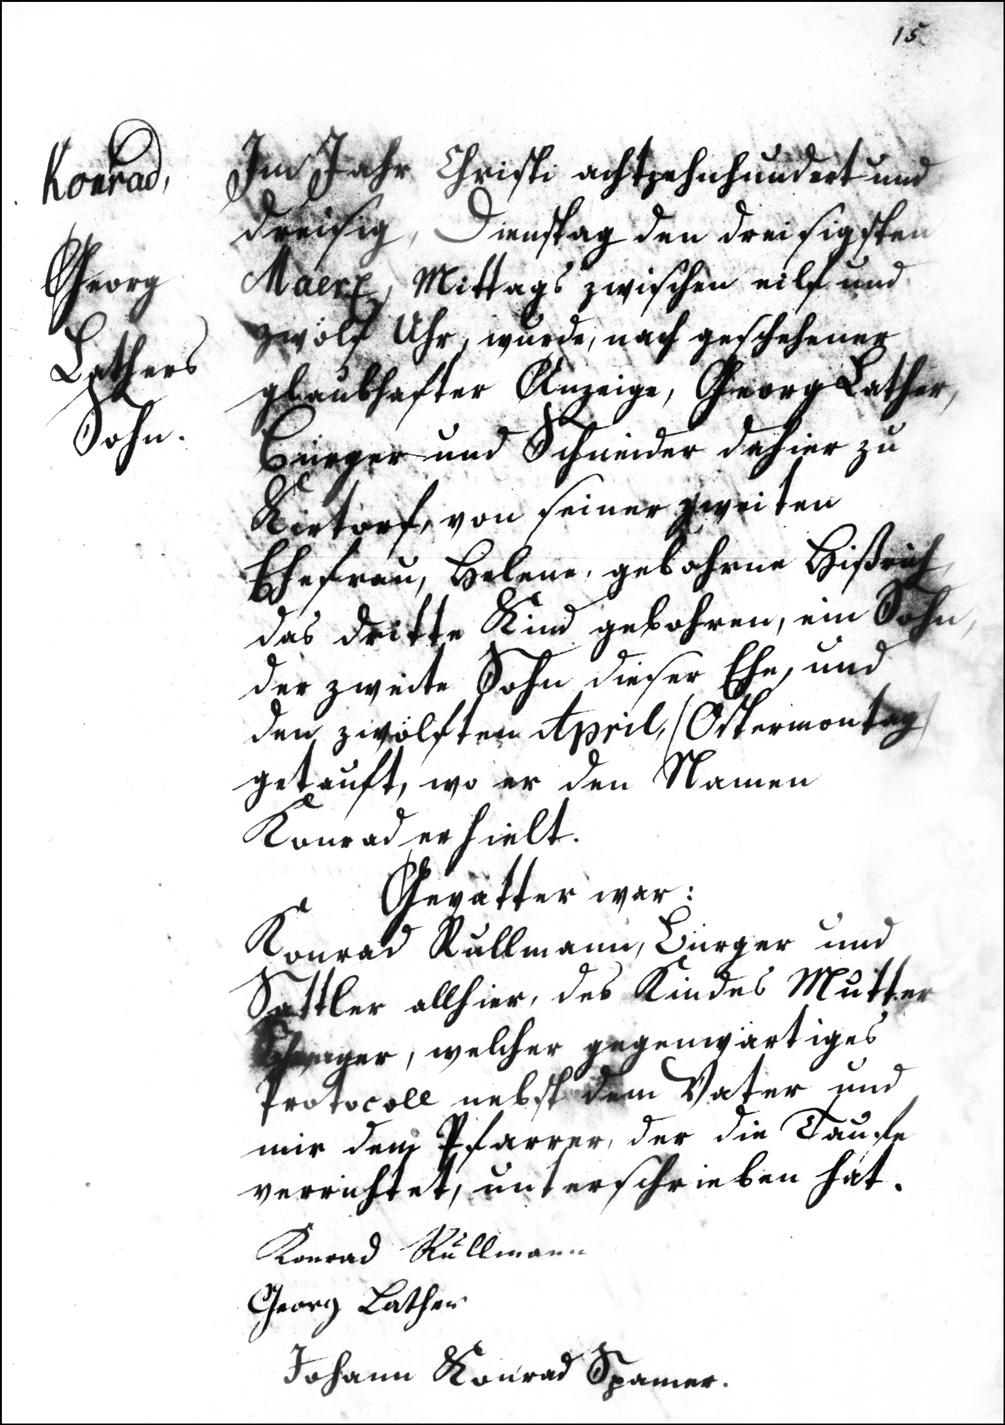 The Birth and Baptismal Record of Konrad Lather - 1830